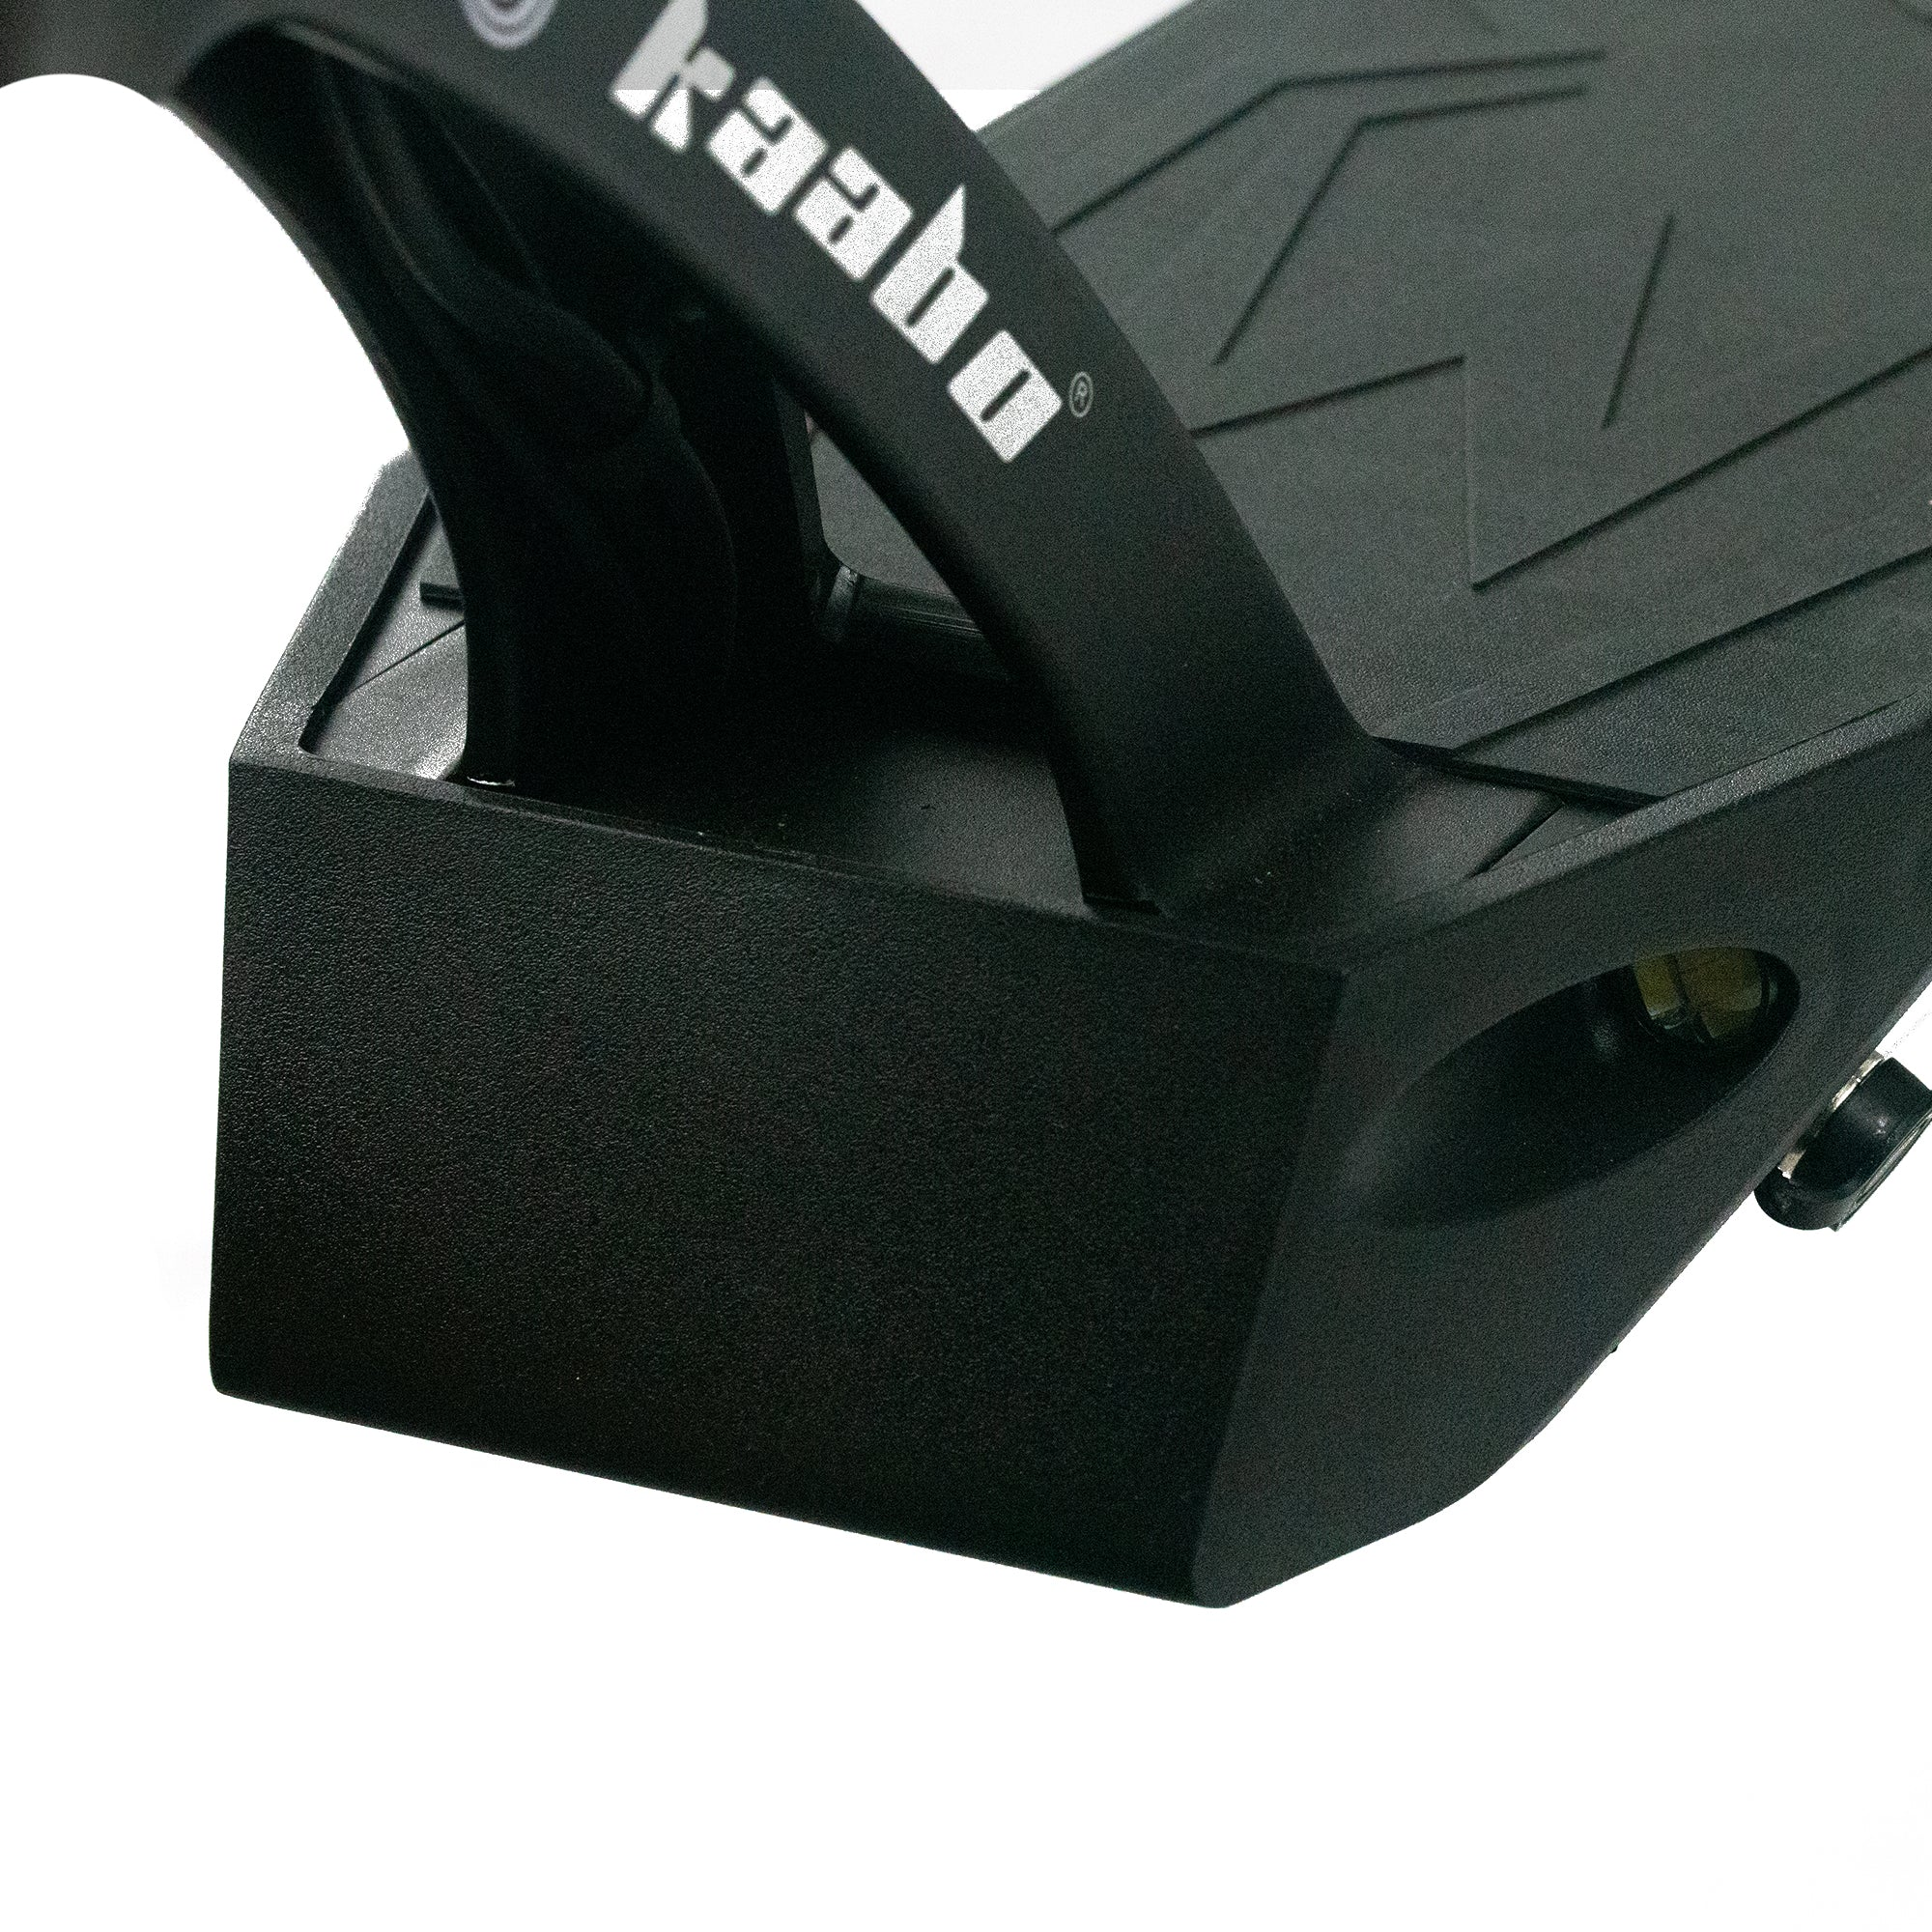 Front Deck Cover for the Mantis Pro SE